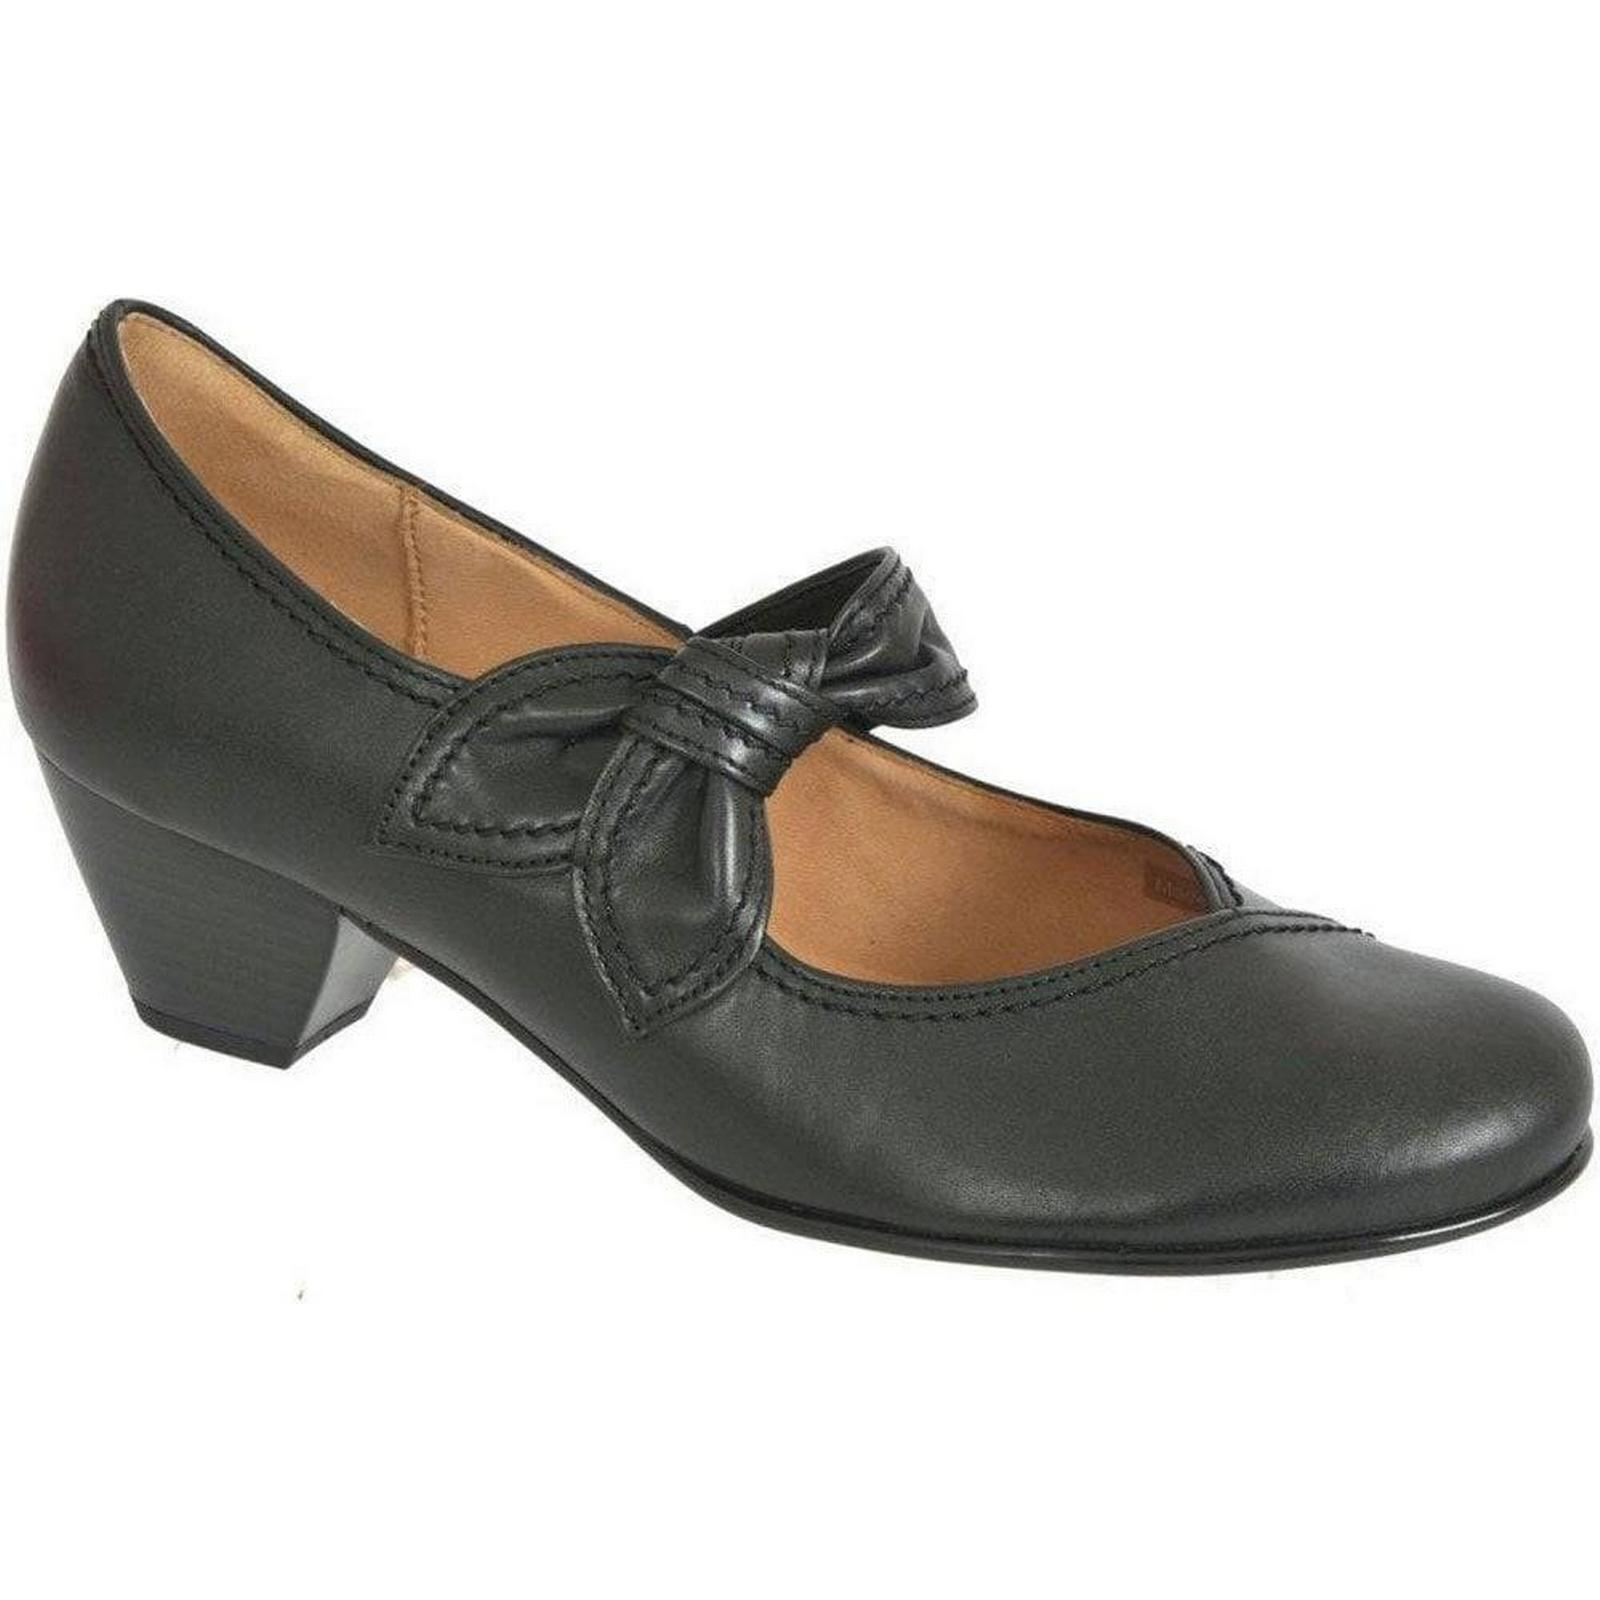 Gabor Henrietta Black Colour: Leather Dress Courts 35.457 Colour: Black Black, Size: 01acfe